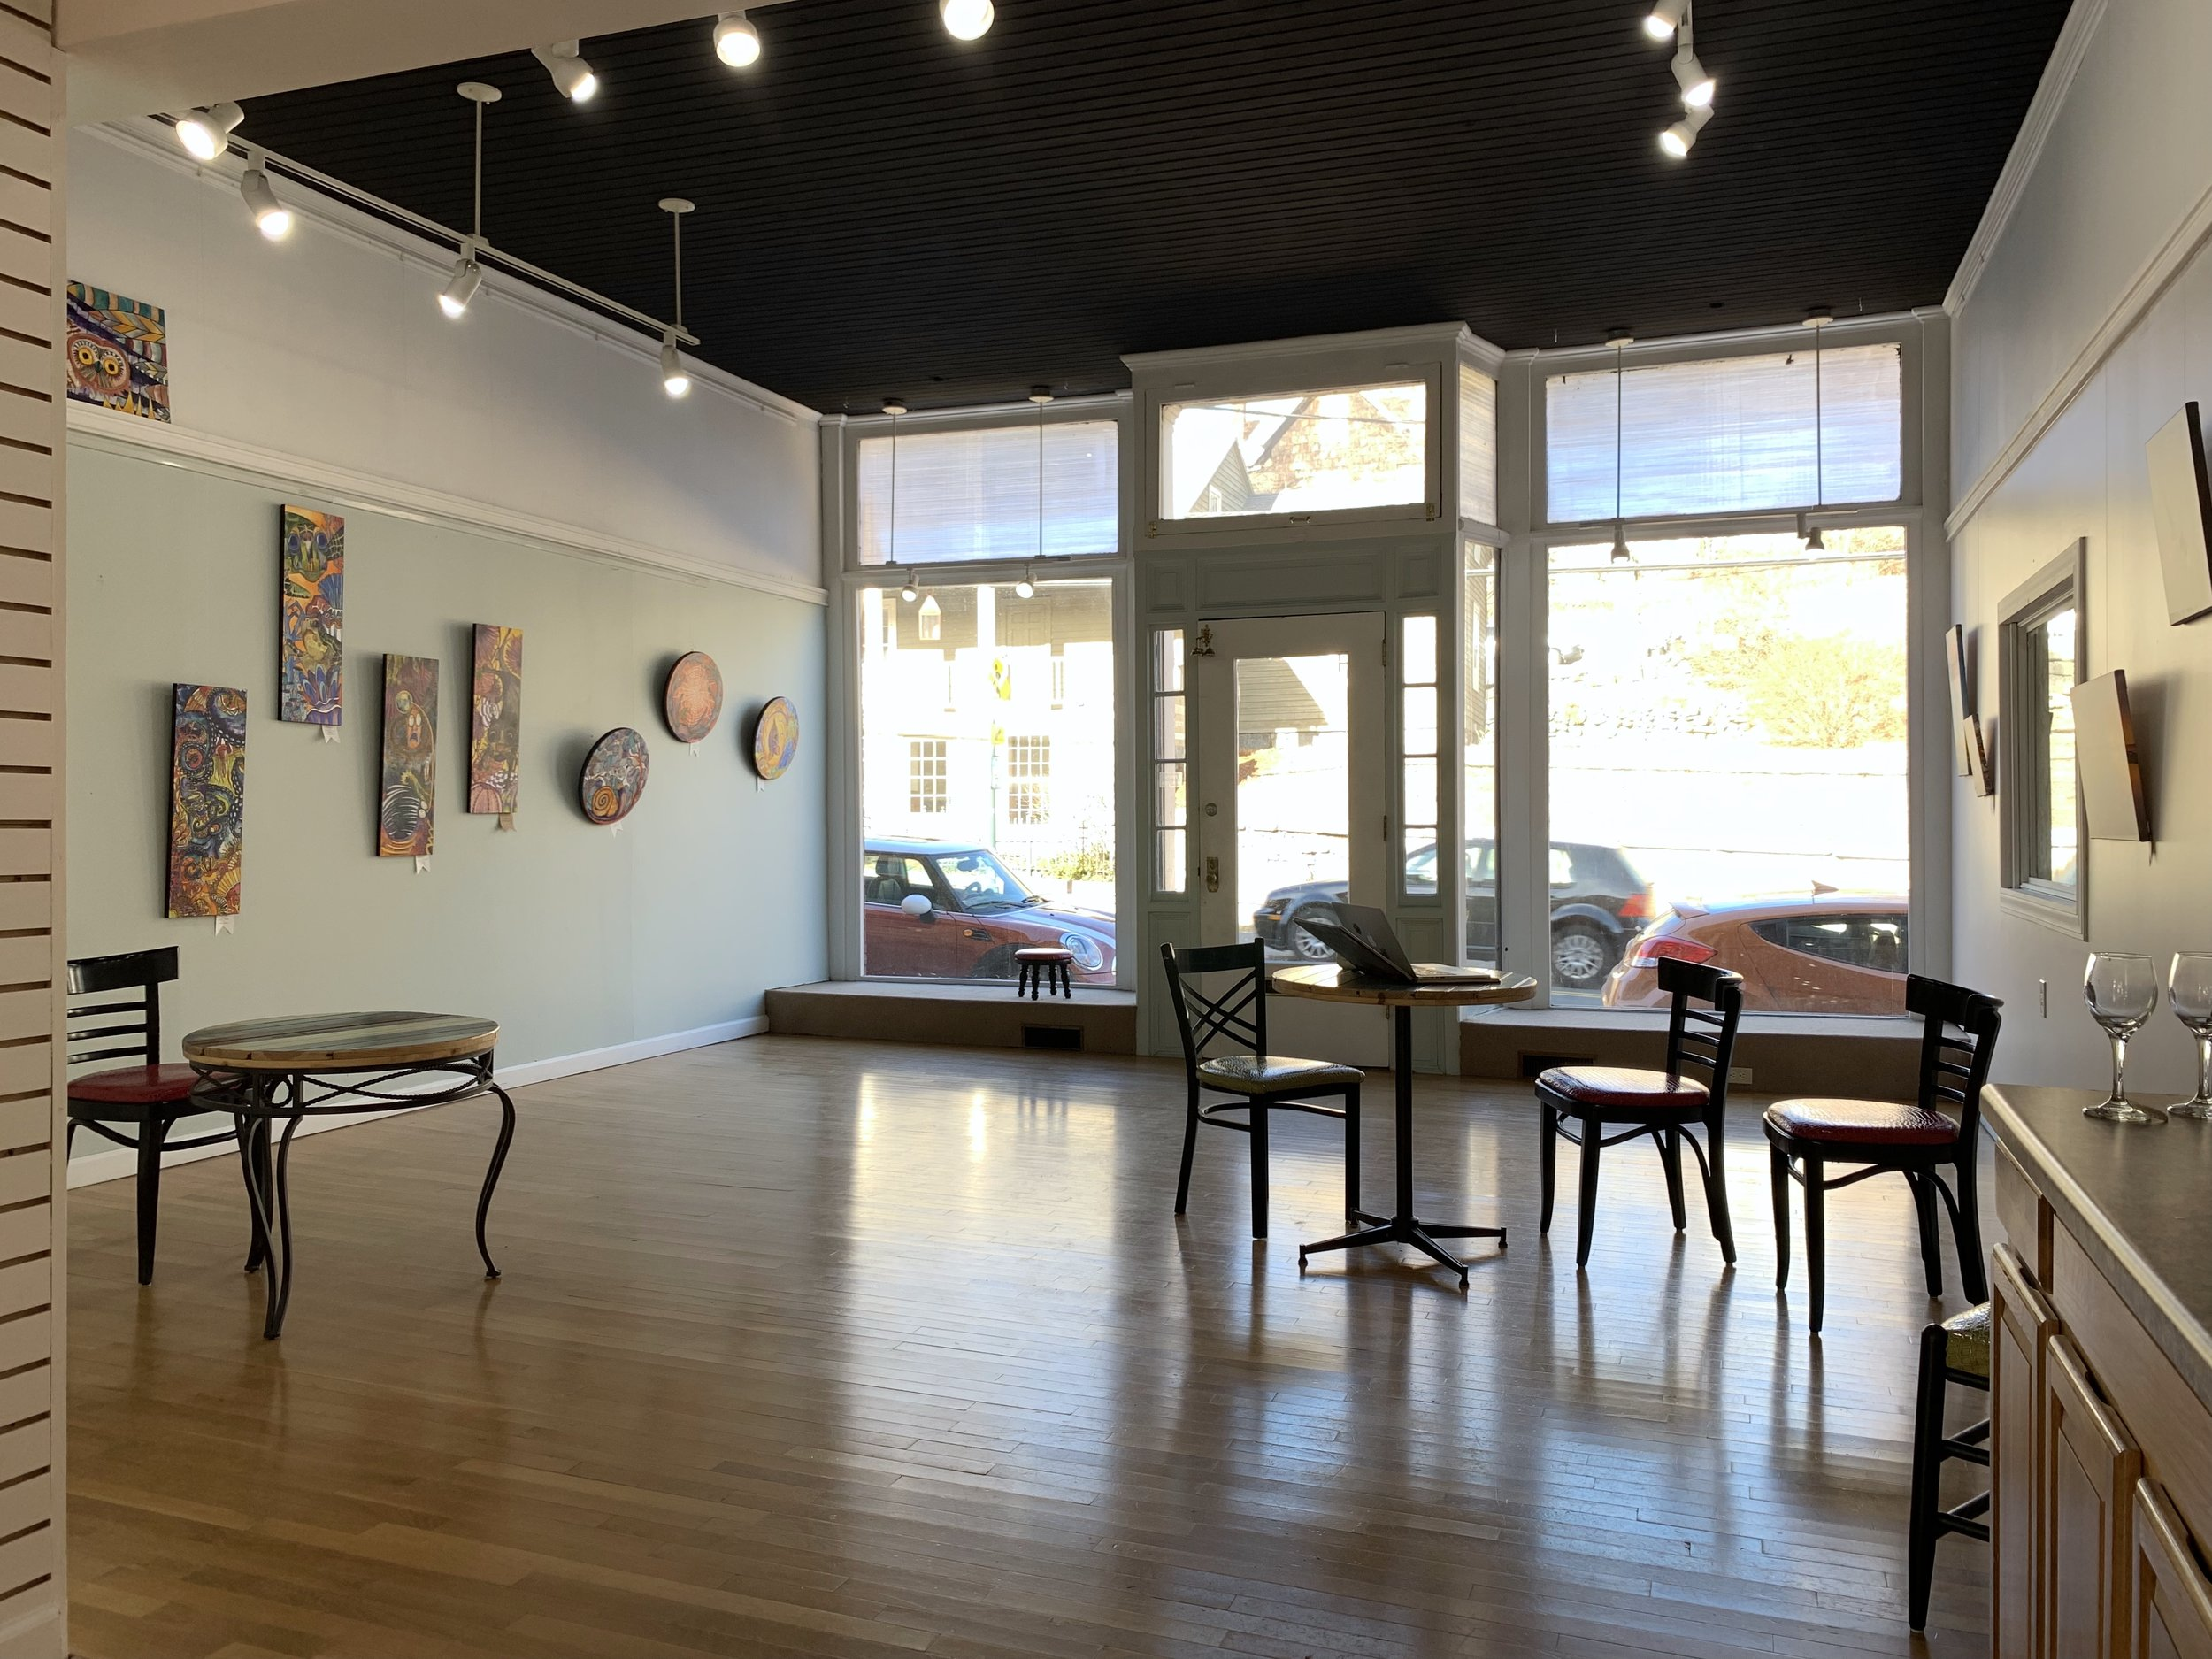 The gallery shop waiting for its open house and prospective new tenant!